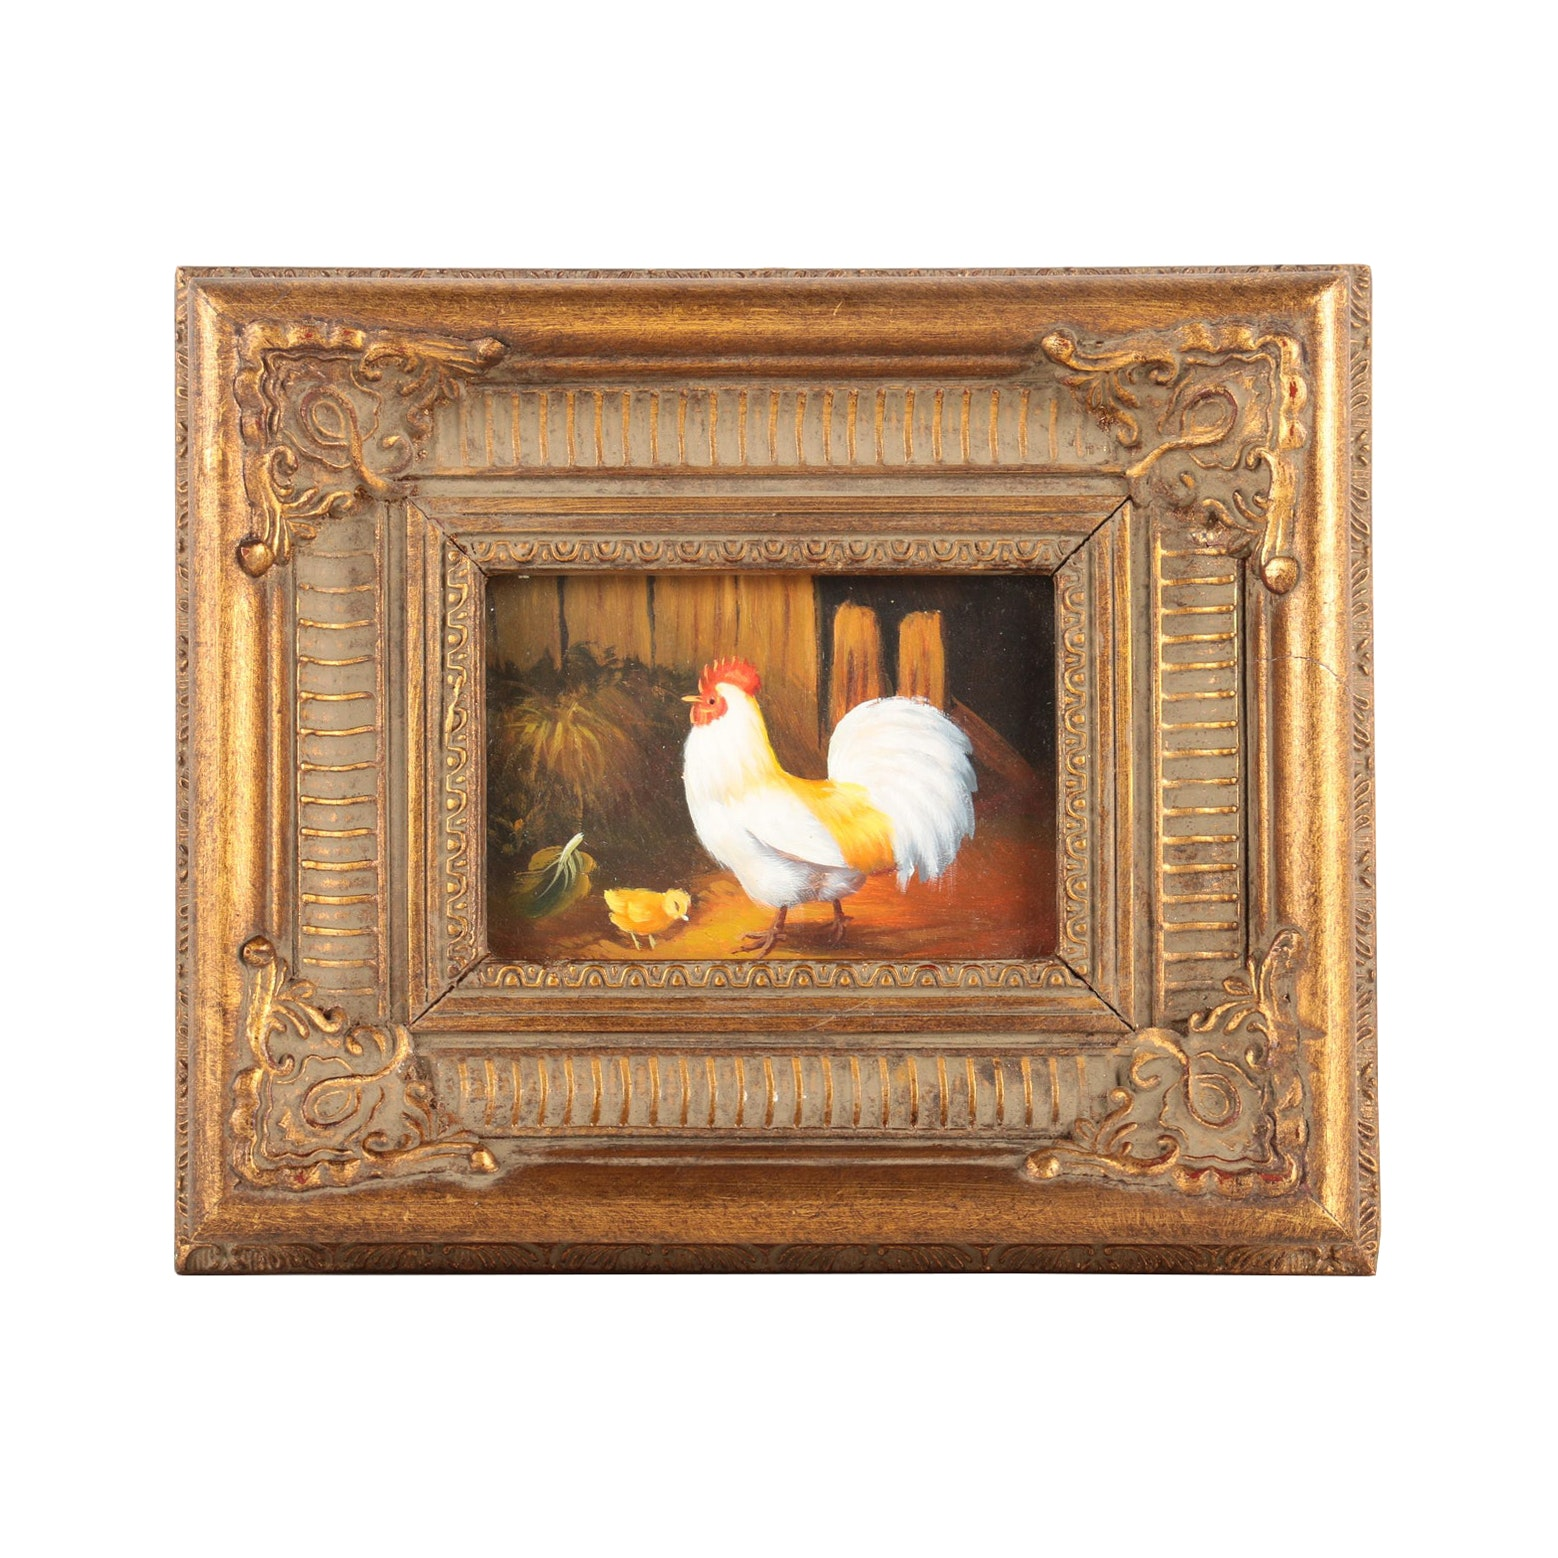 Oil Painting on Board of Rooster and Chick